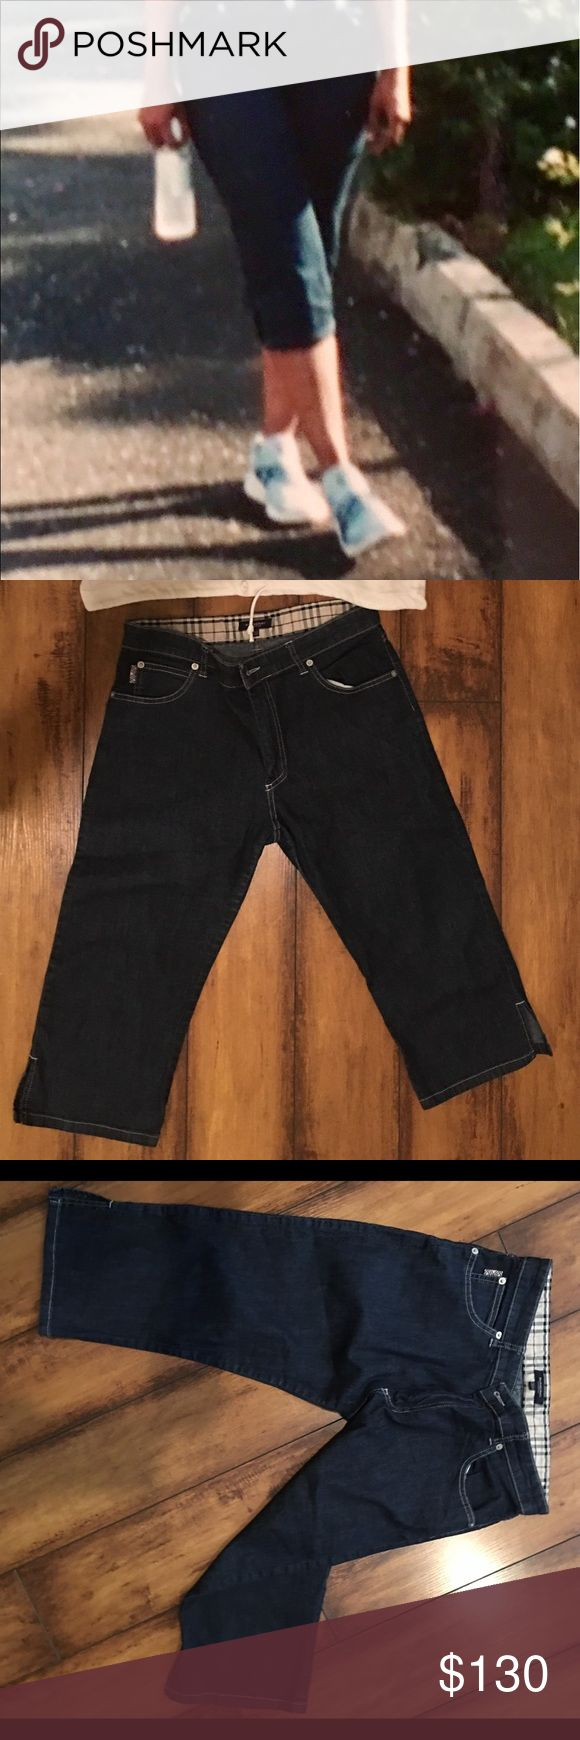 BURBERRY CAPRI JEANS Women's Burberry summer cropped Capri, used but in very good condition. Burberry Jeans Ankle & Cropped